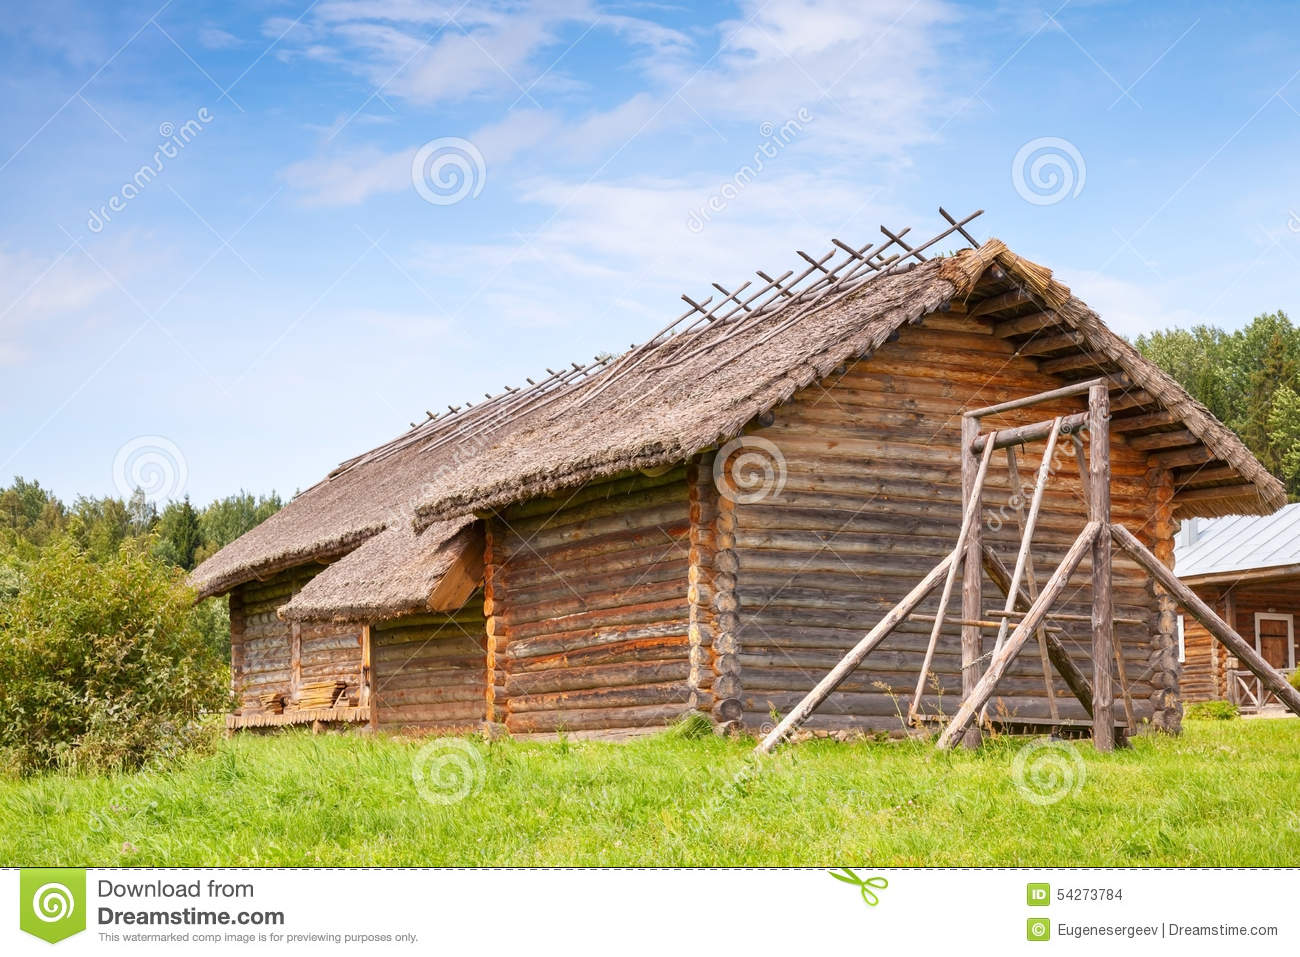 Russian Rural Wooden Architecture Example, Old Barns Stock ...